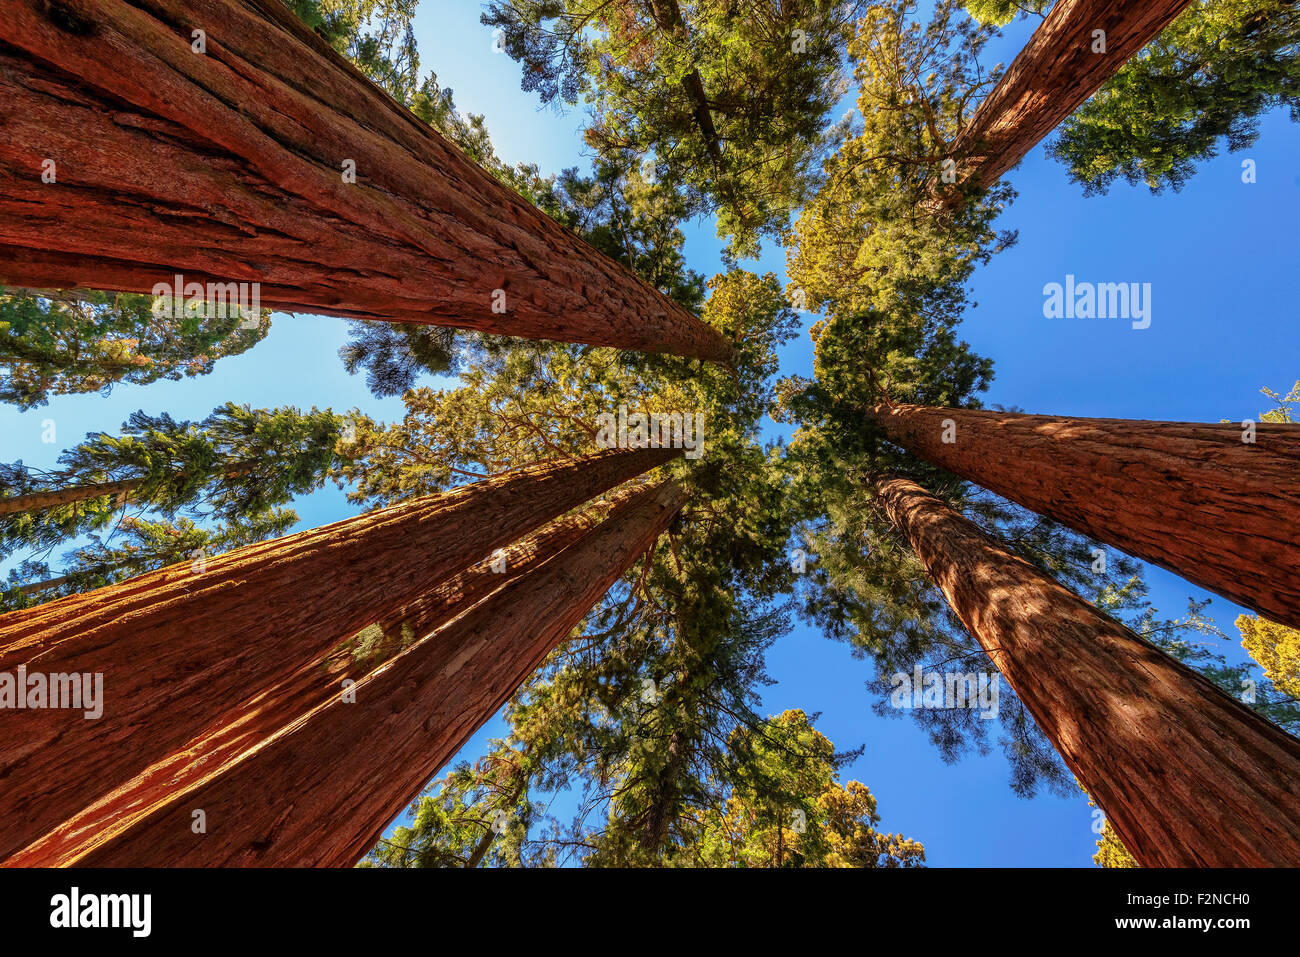 Giant trees closeup in Sequoia National Park, California - Stock Image